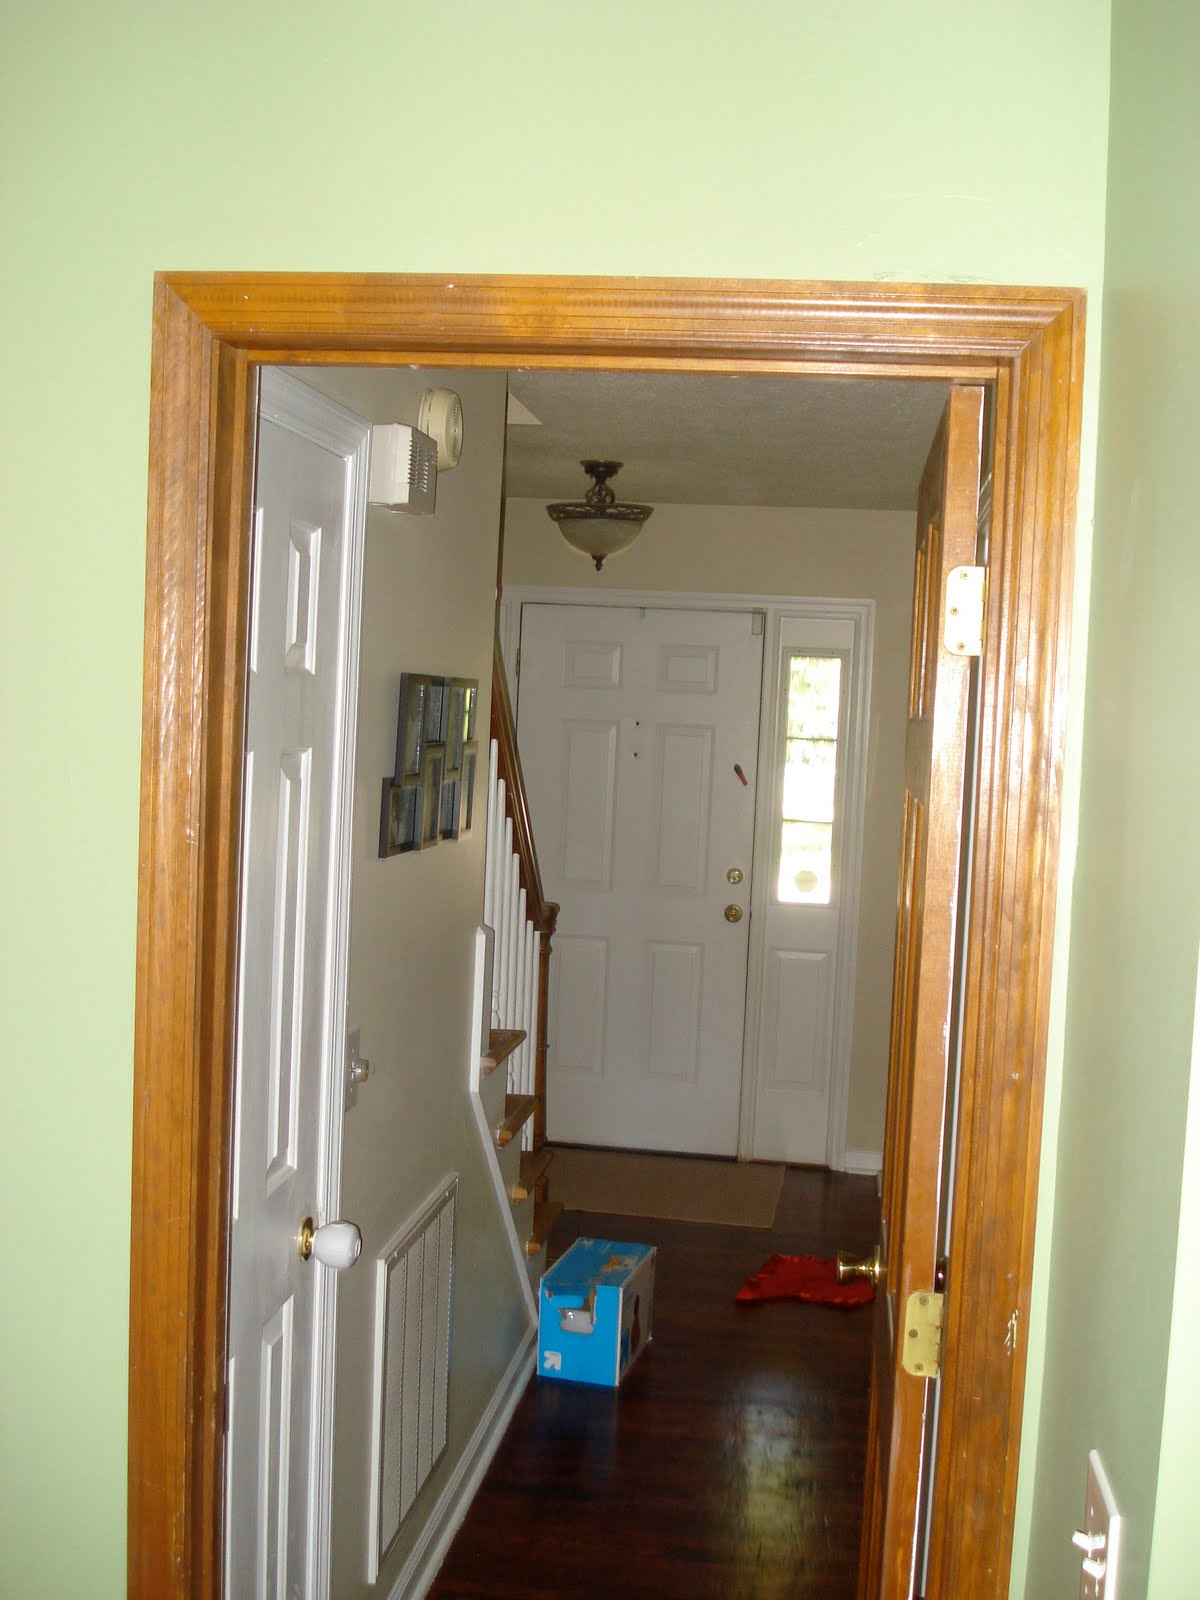 Floor Project: Painting Wood Trim/Doors White